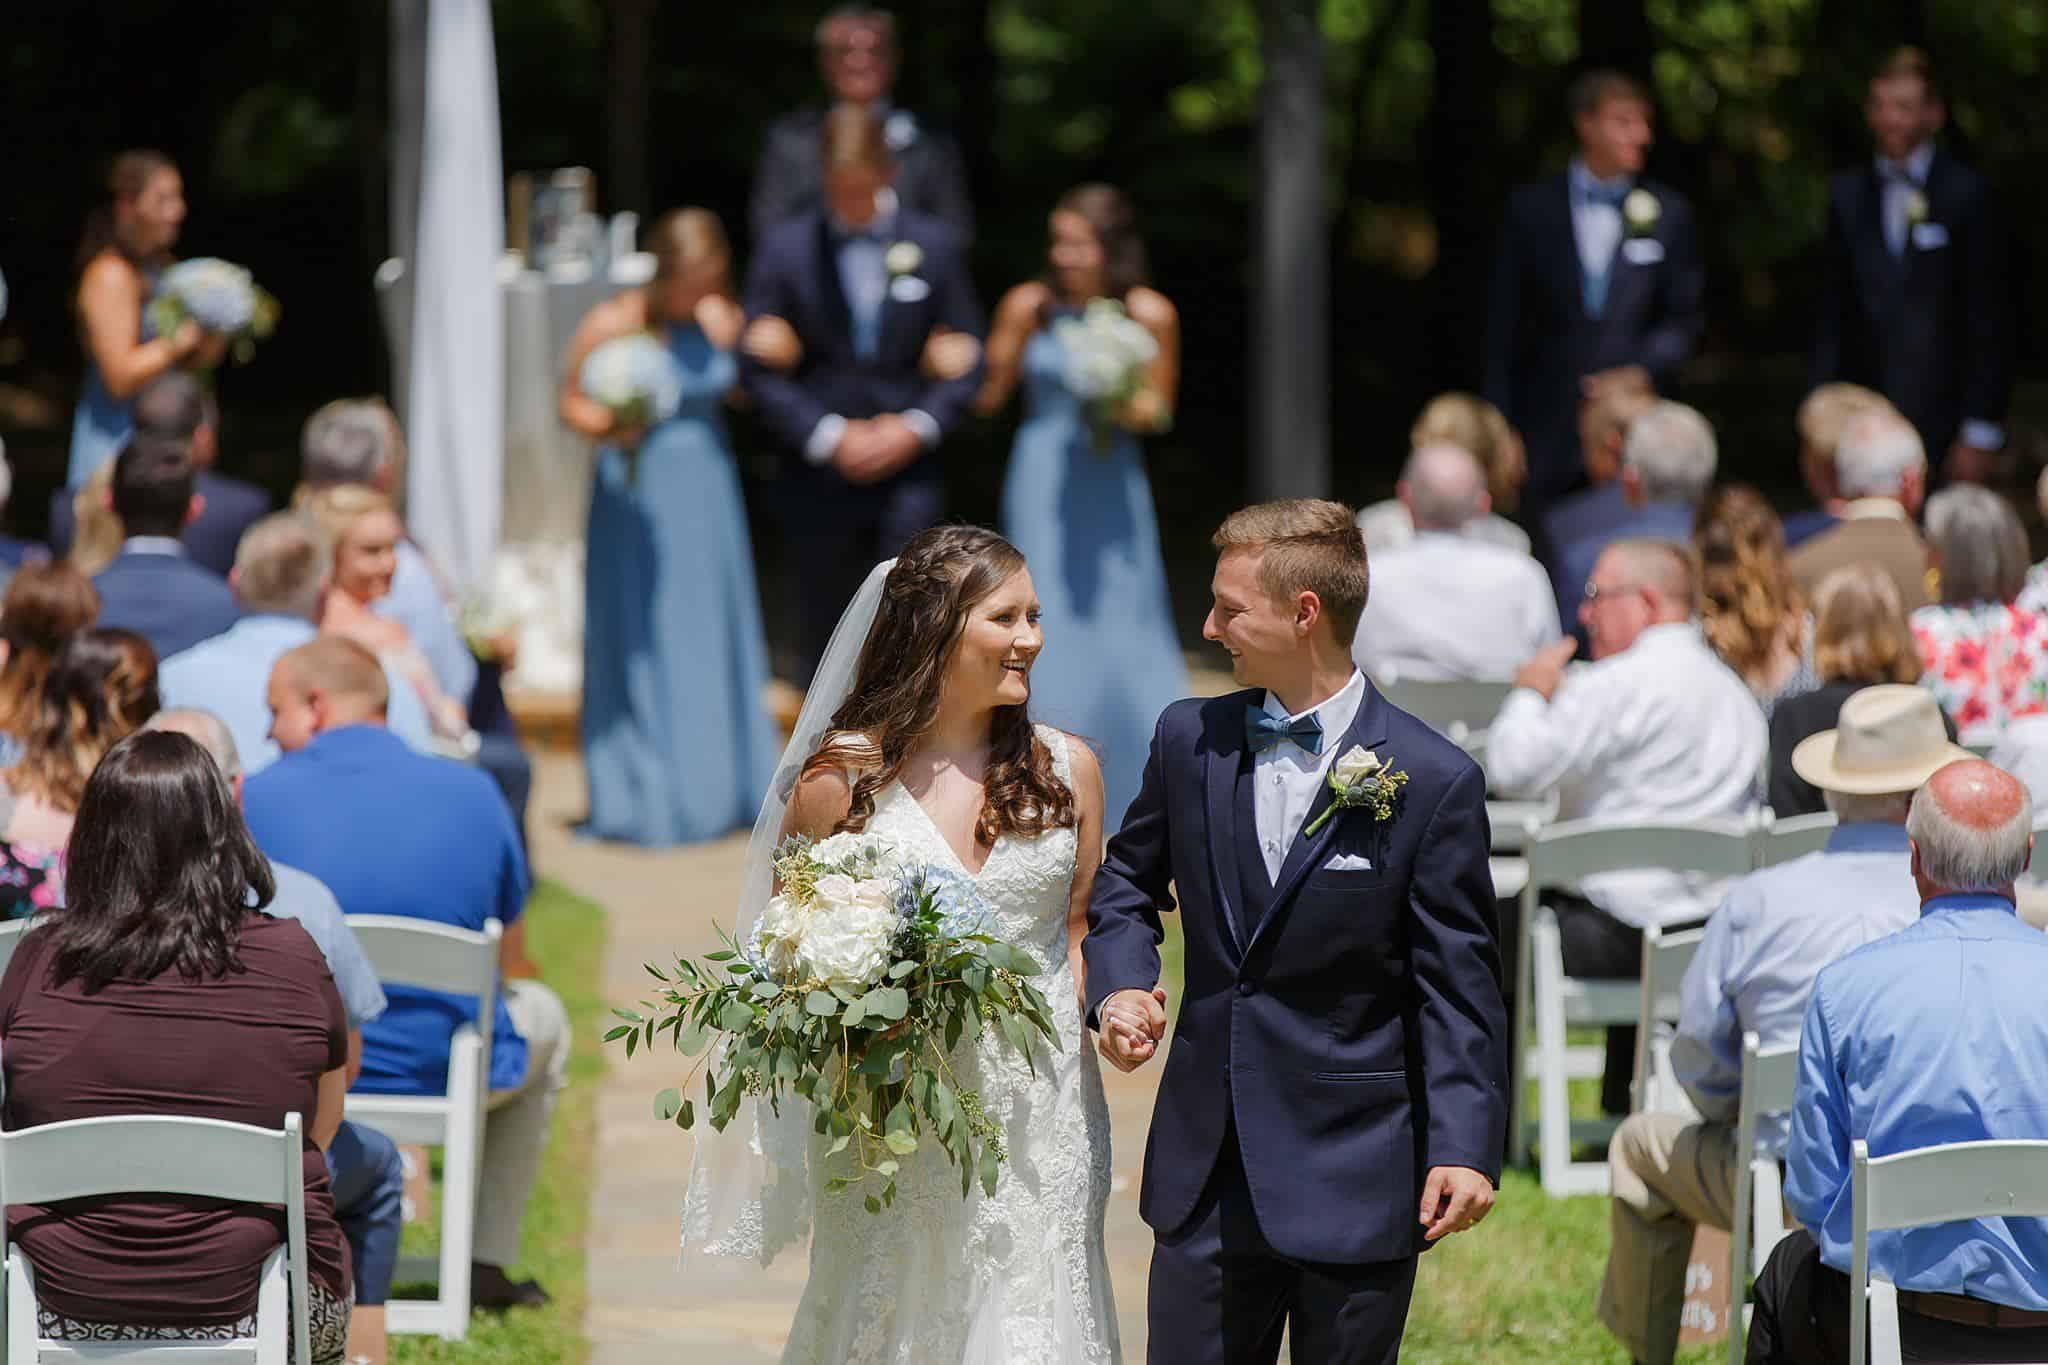 Bride and Groom smiling at each other during recessional at outdoor wedding ceremony